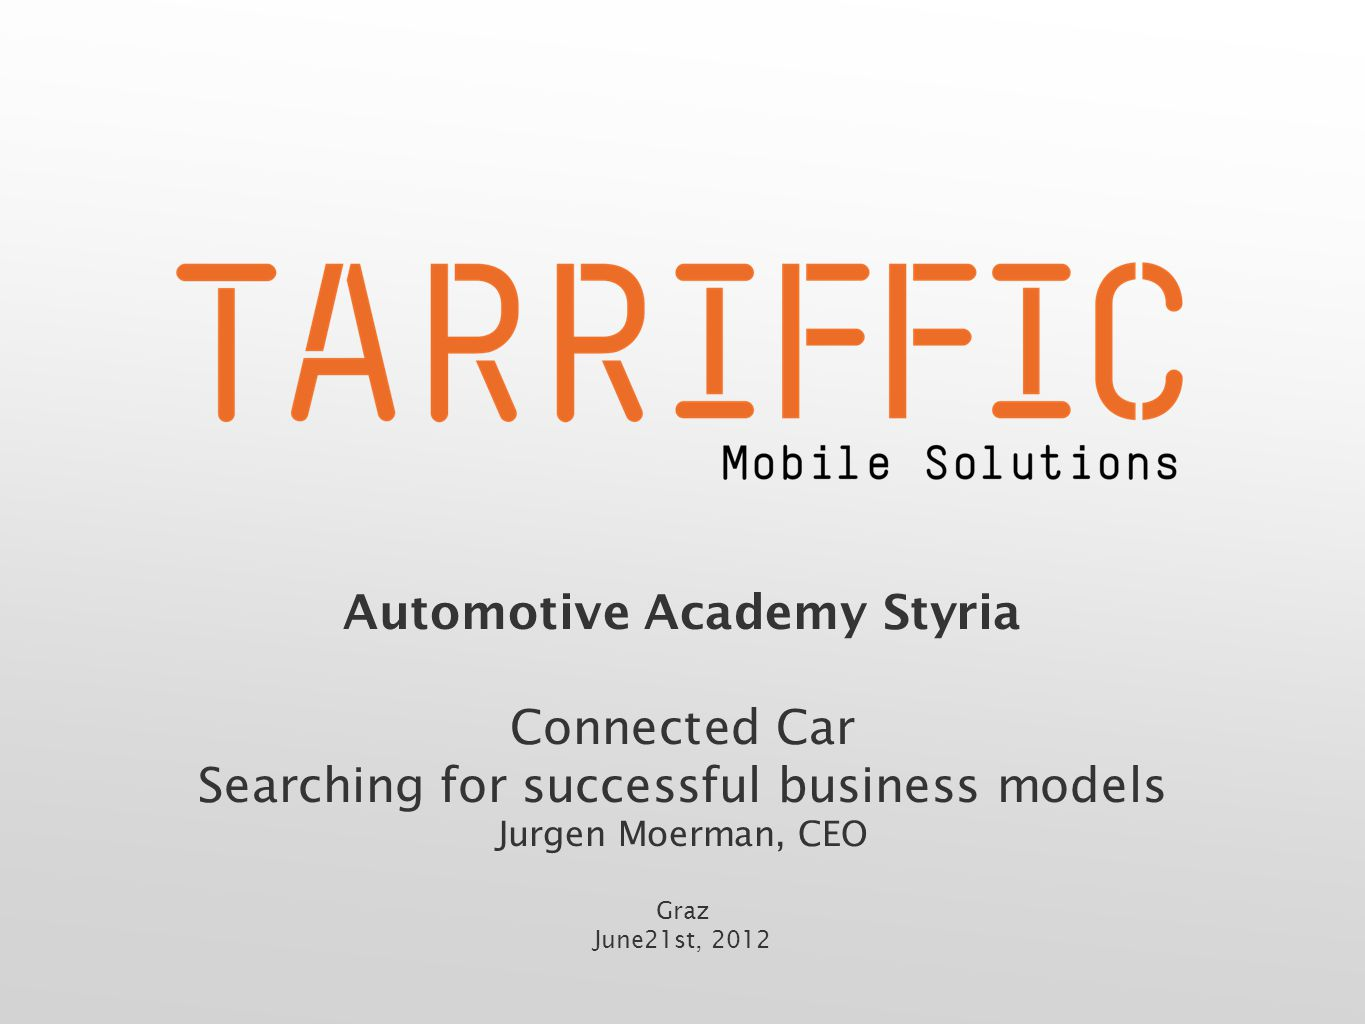 Automotive Academy Styria Connected Car Searching for successful business models Jurgen Moerman, CEO Graz June21st, 2012